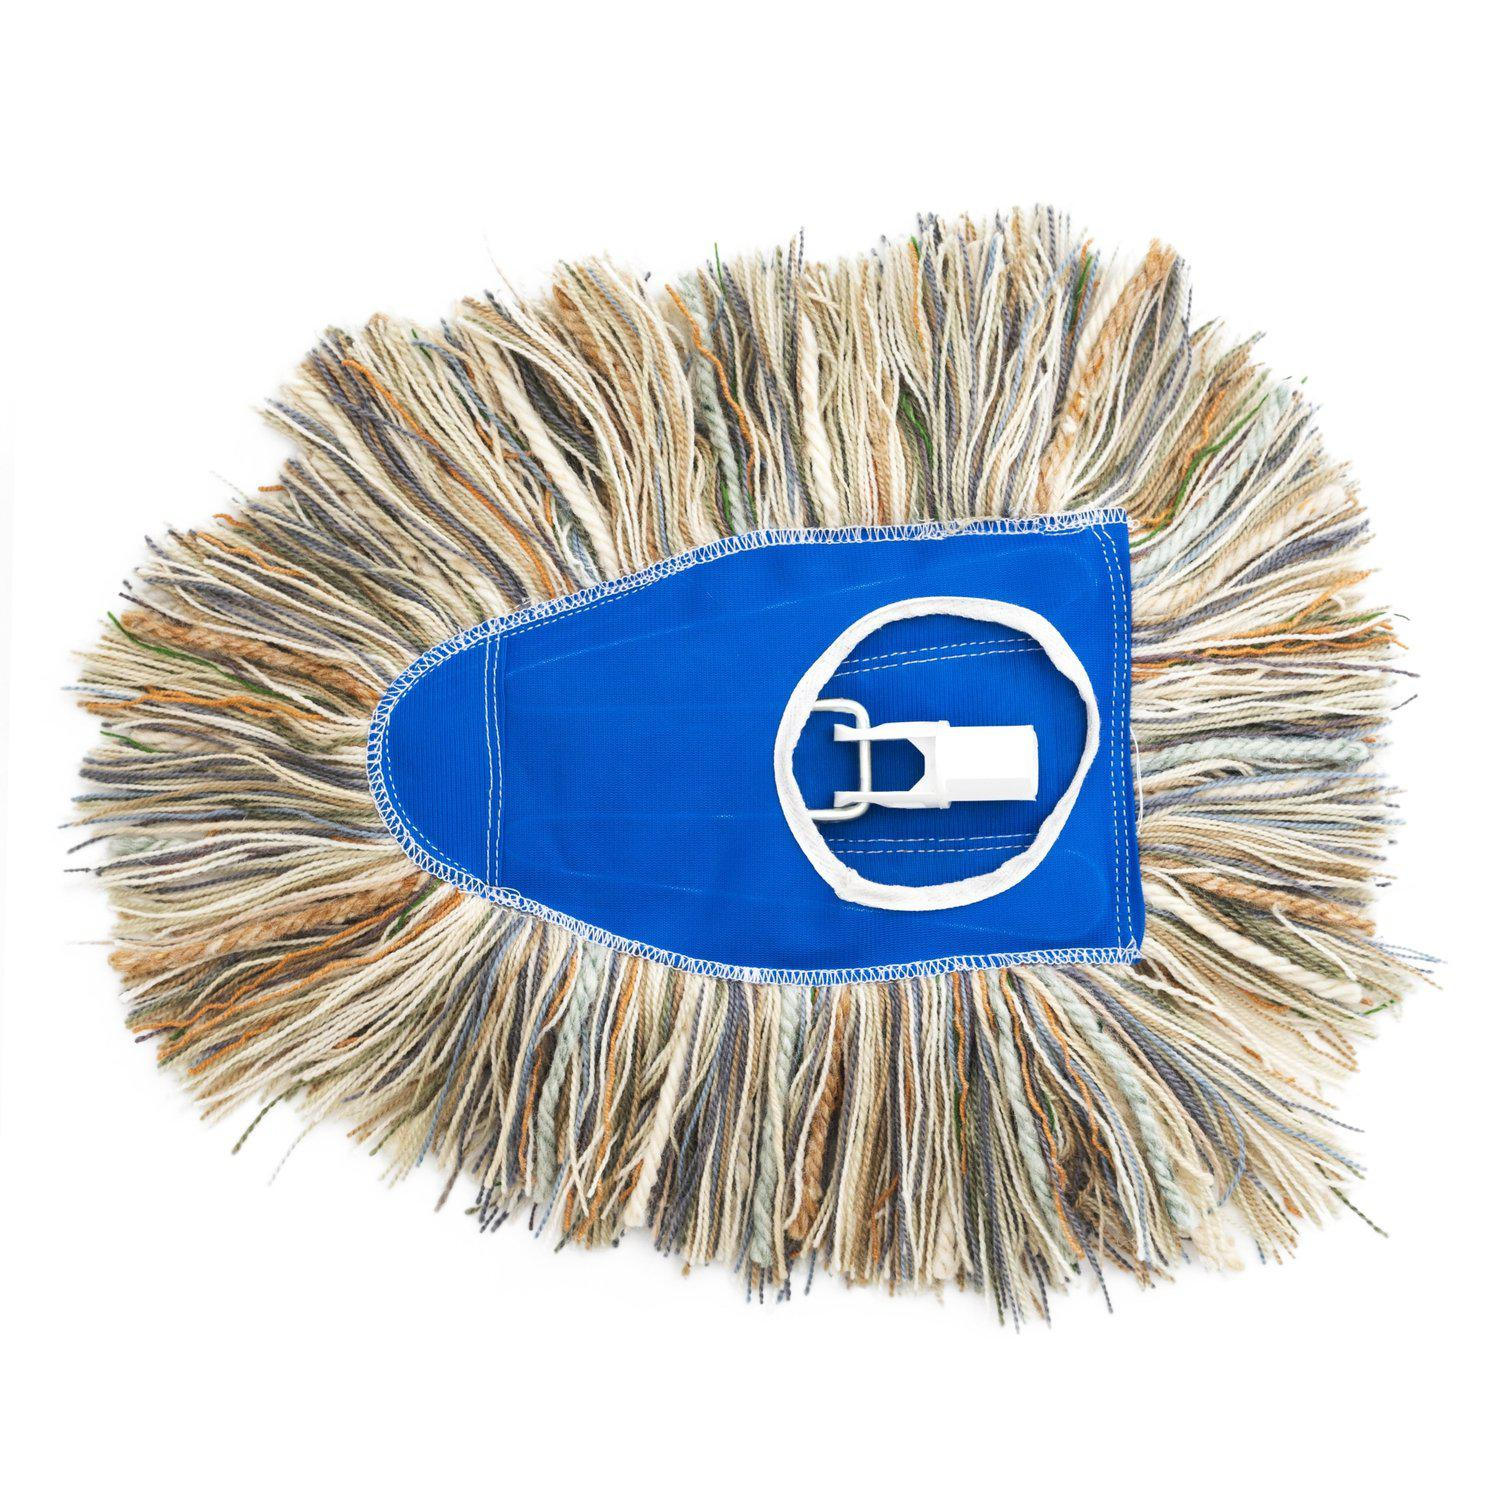 Wooly Dust Mop Replacement Head With Frame-Mops-Fuller Brush Company